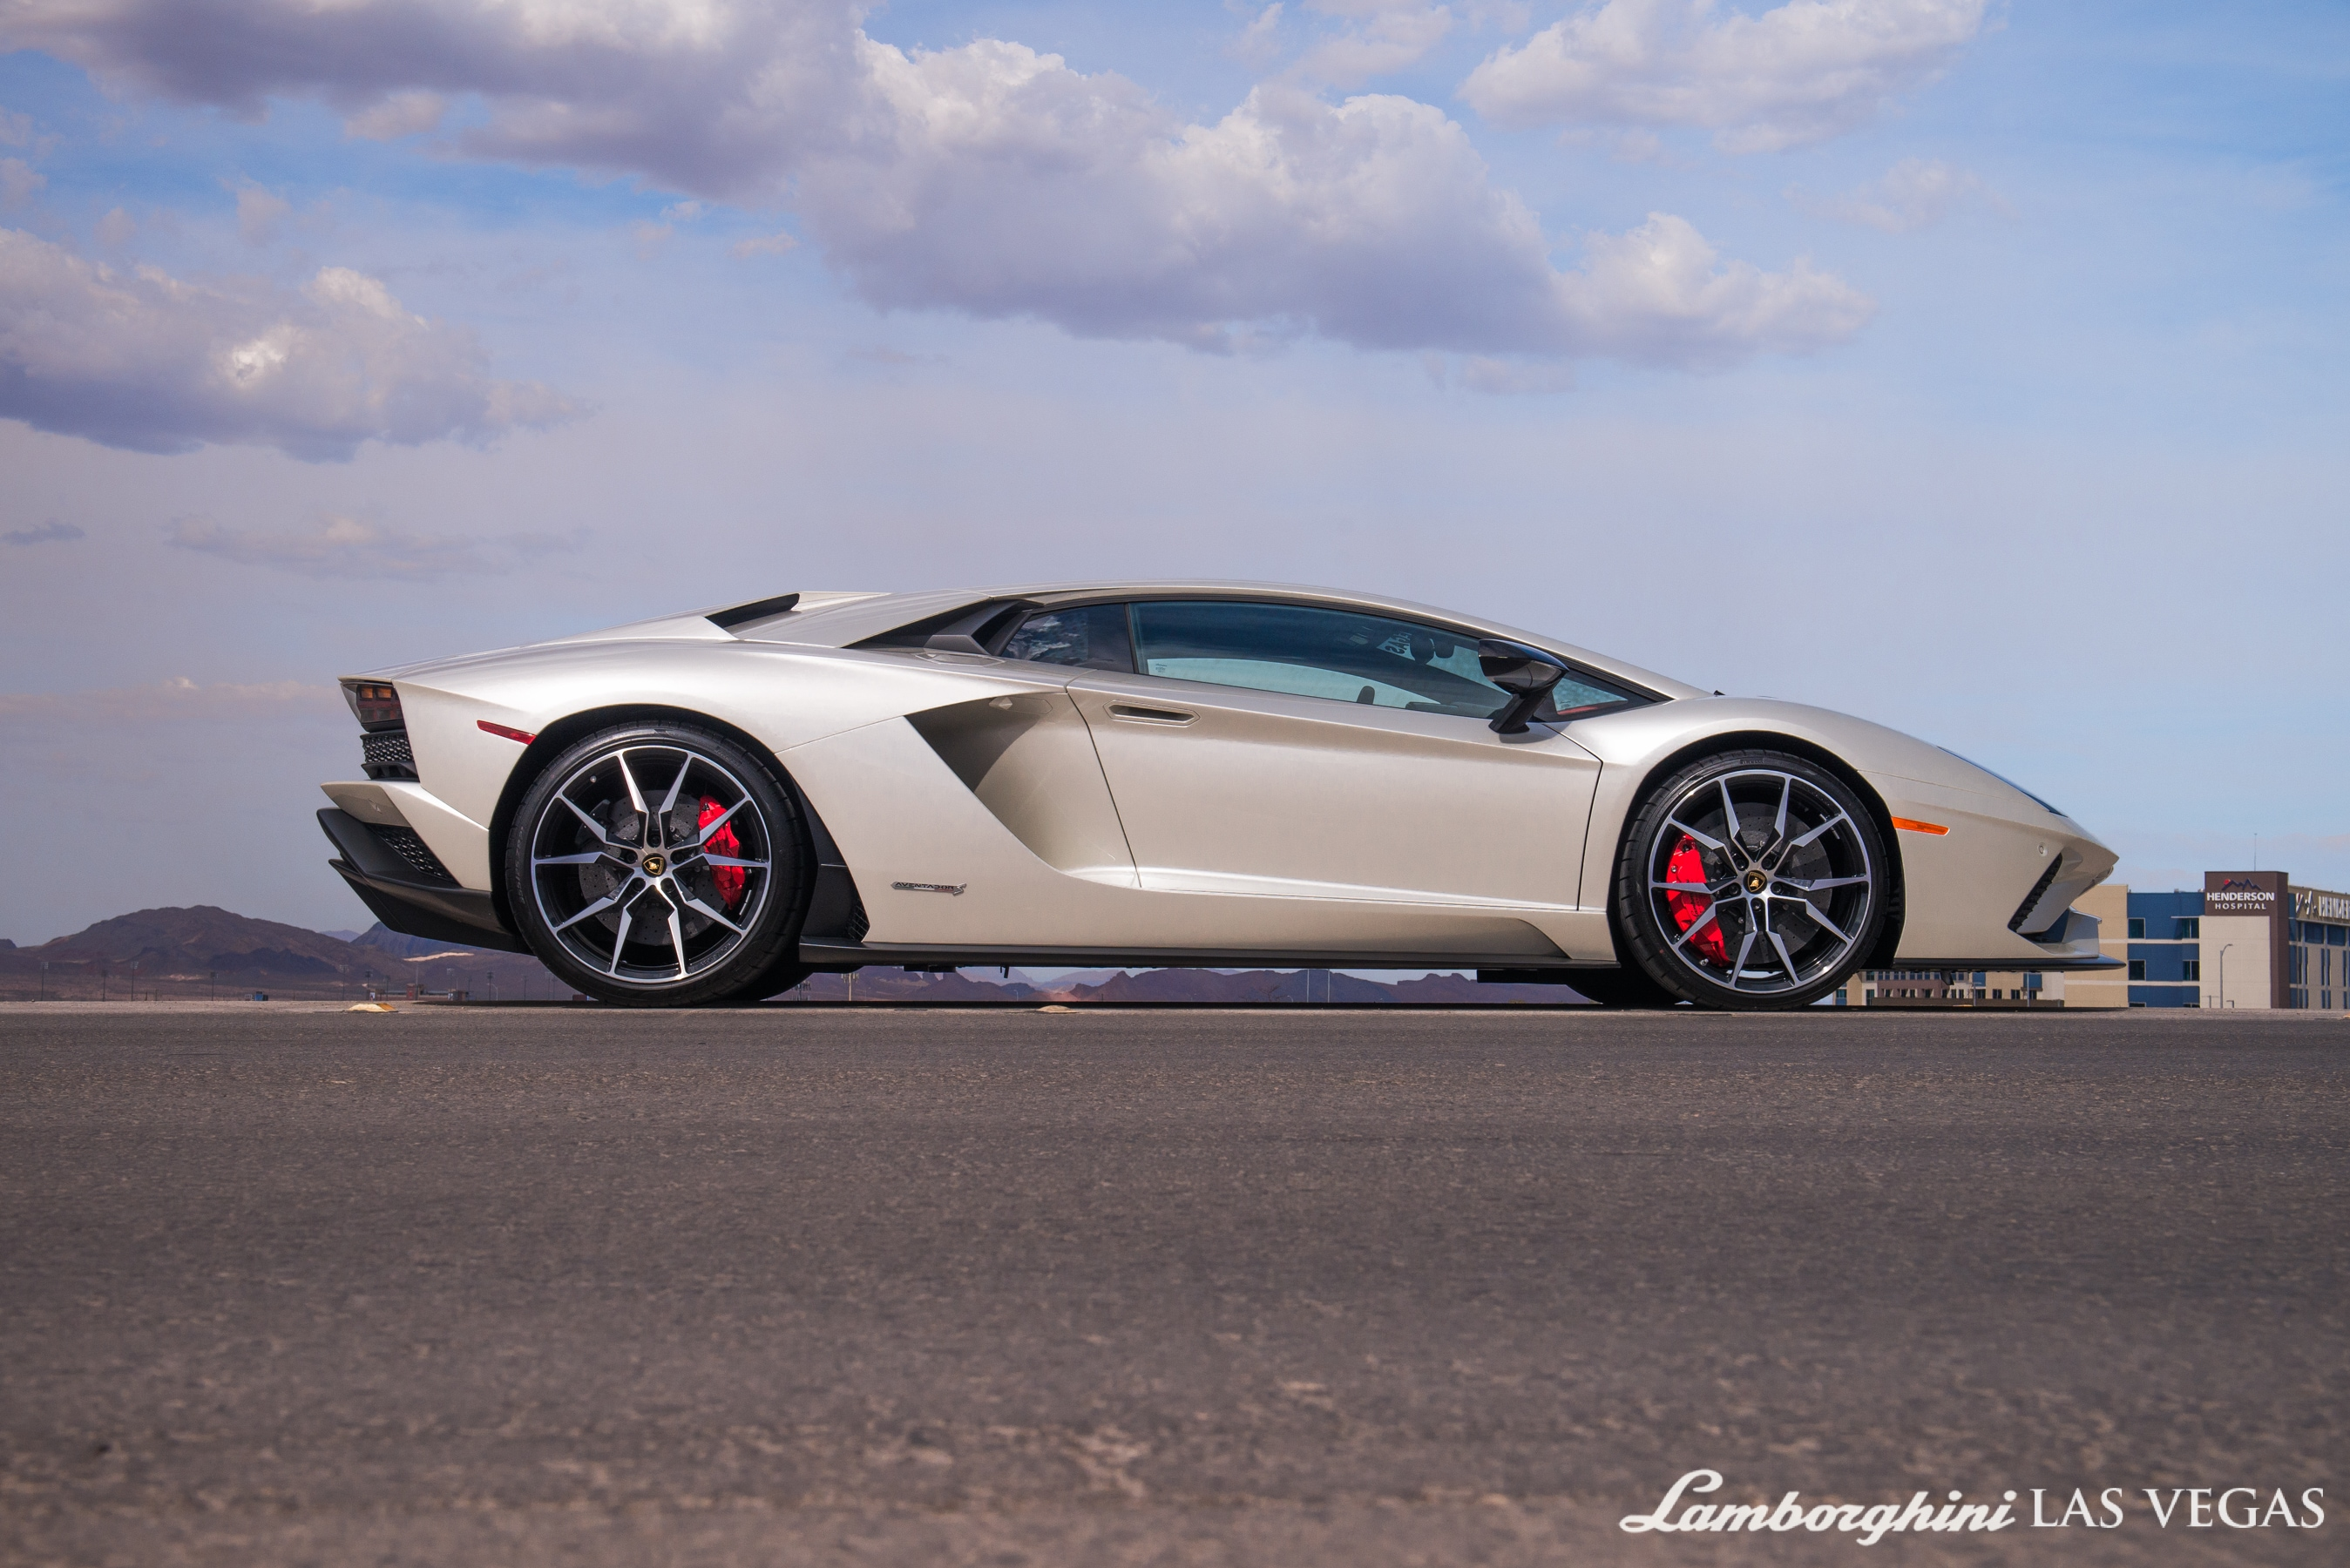 Lamborghini Las Vegas Vehicles For Sale In Henderson Nv